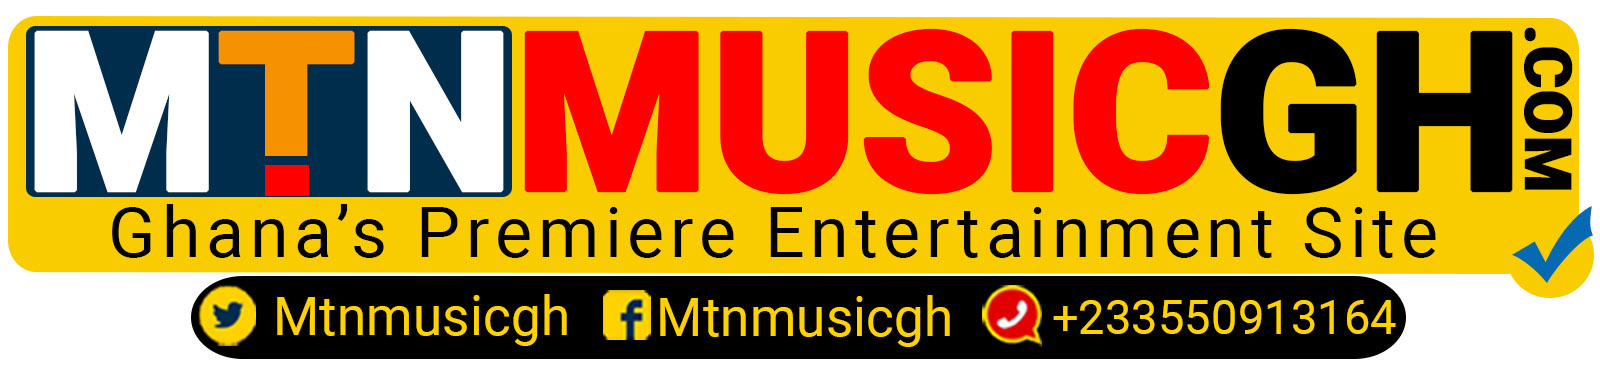 Mtnmusicgh.com - Latest Update's | News & Music Files | Worldwide Entertainment